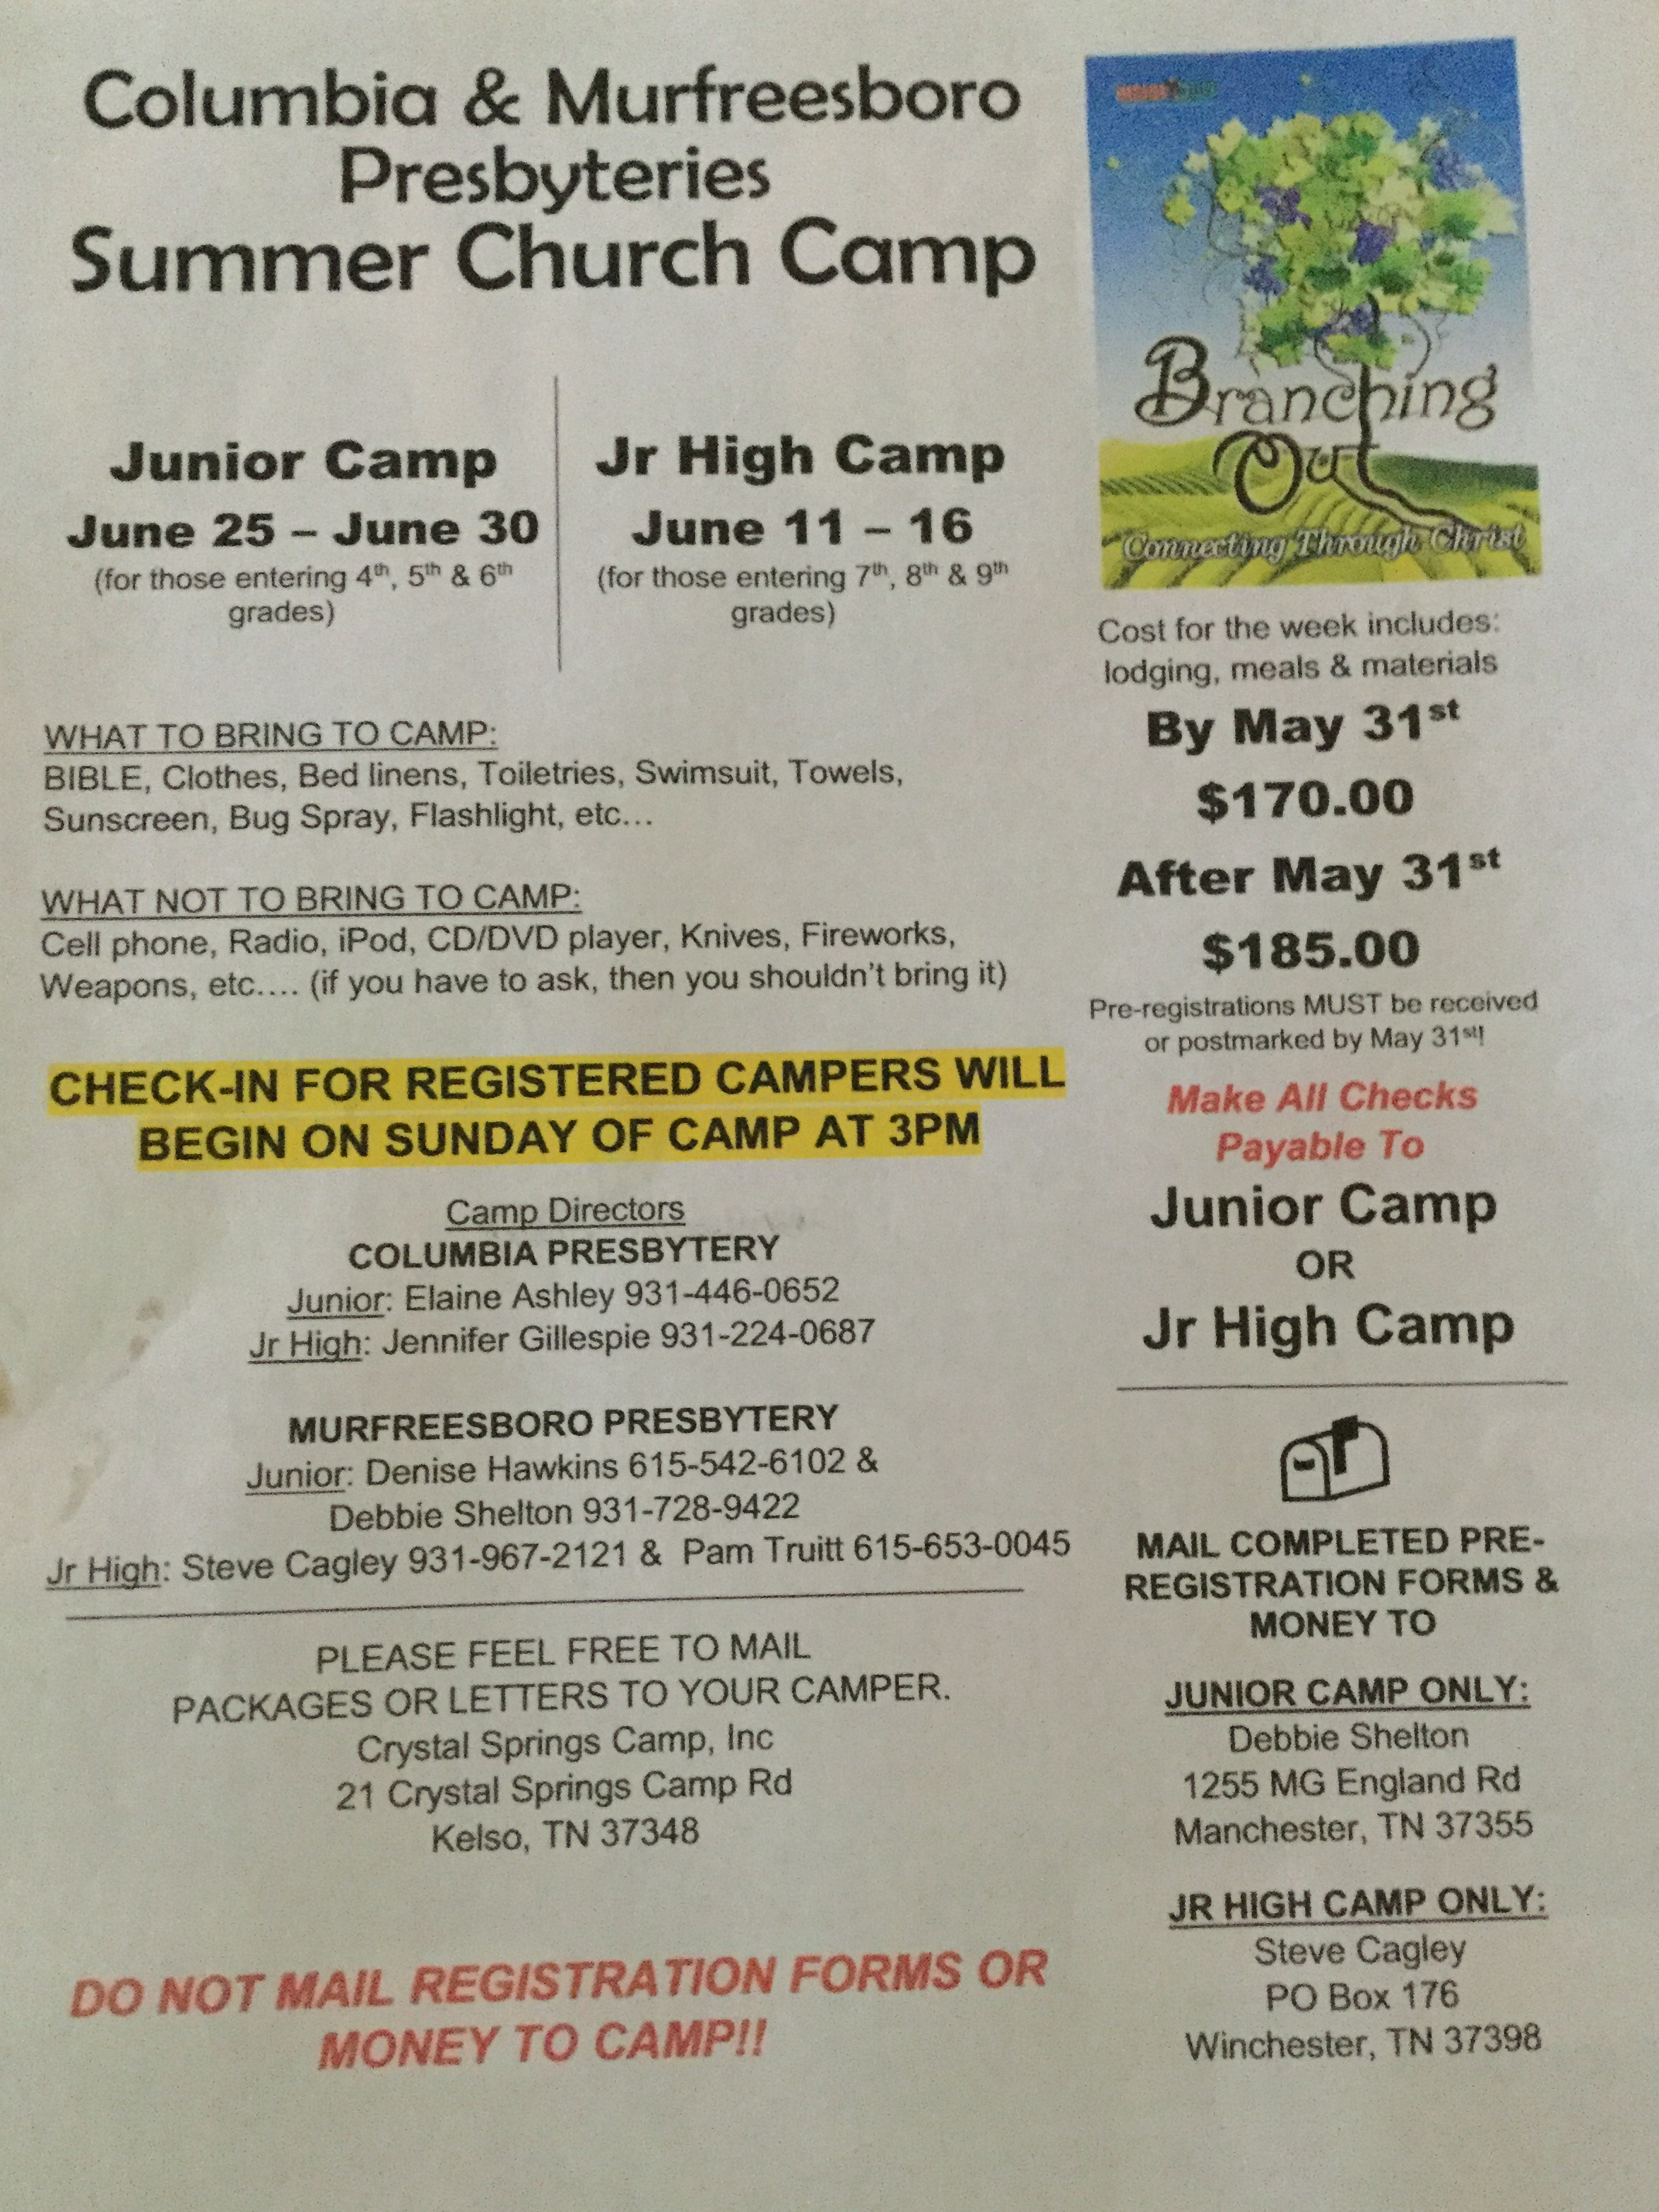 Junior and Junior High Camps